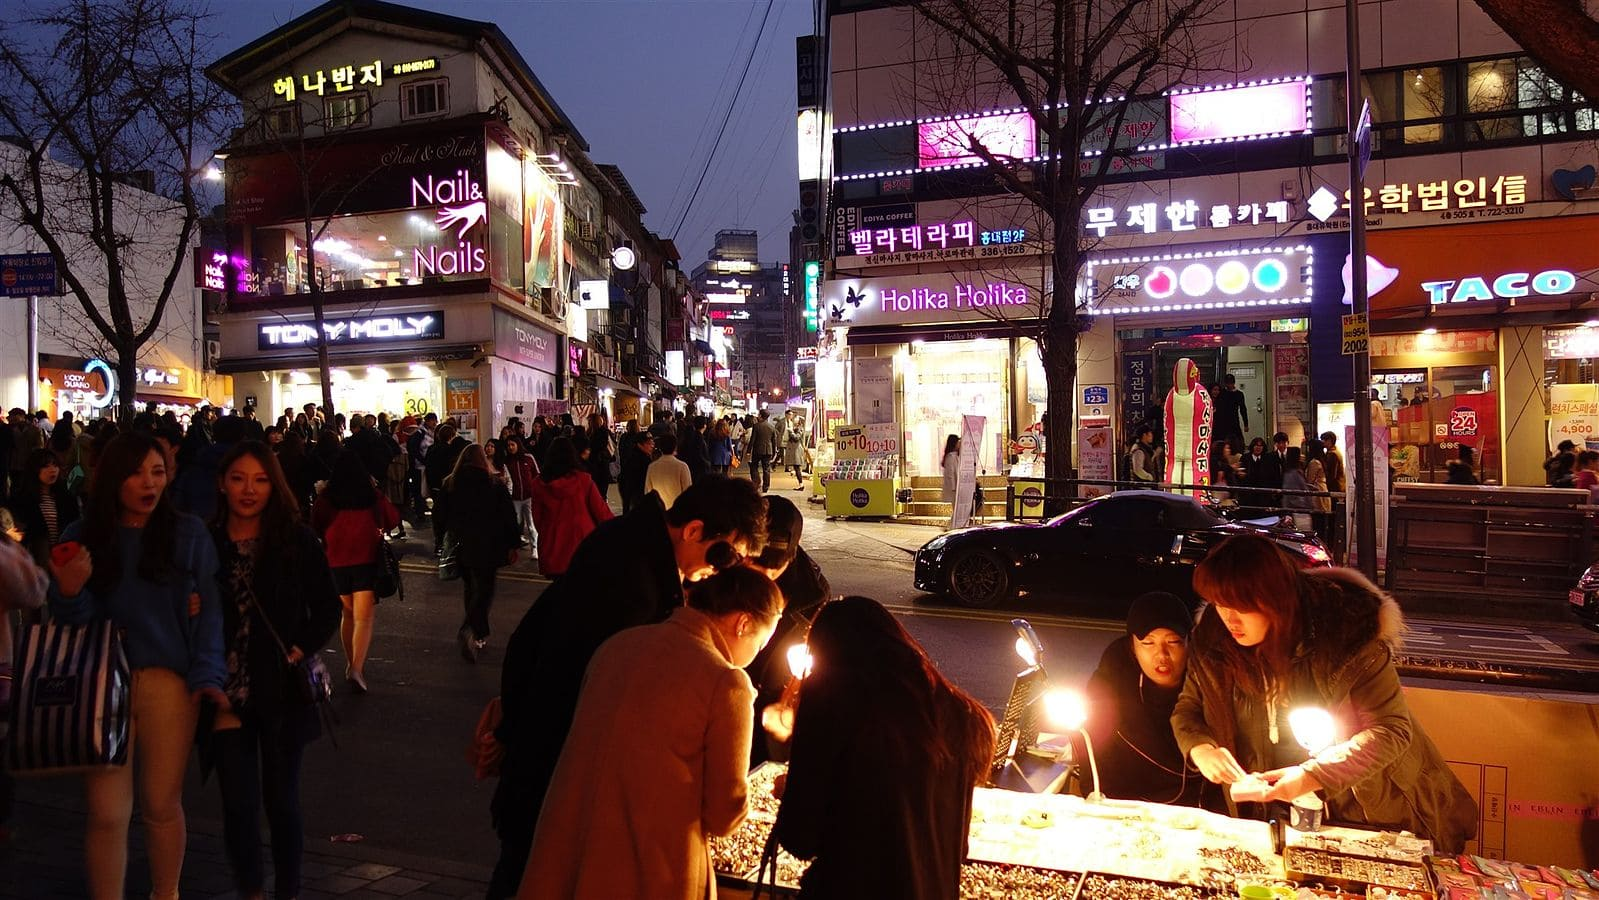 A bit of night shopping before the party in Hongdae